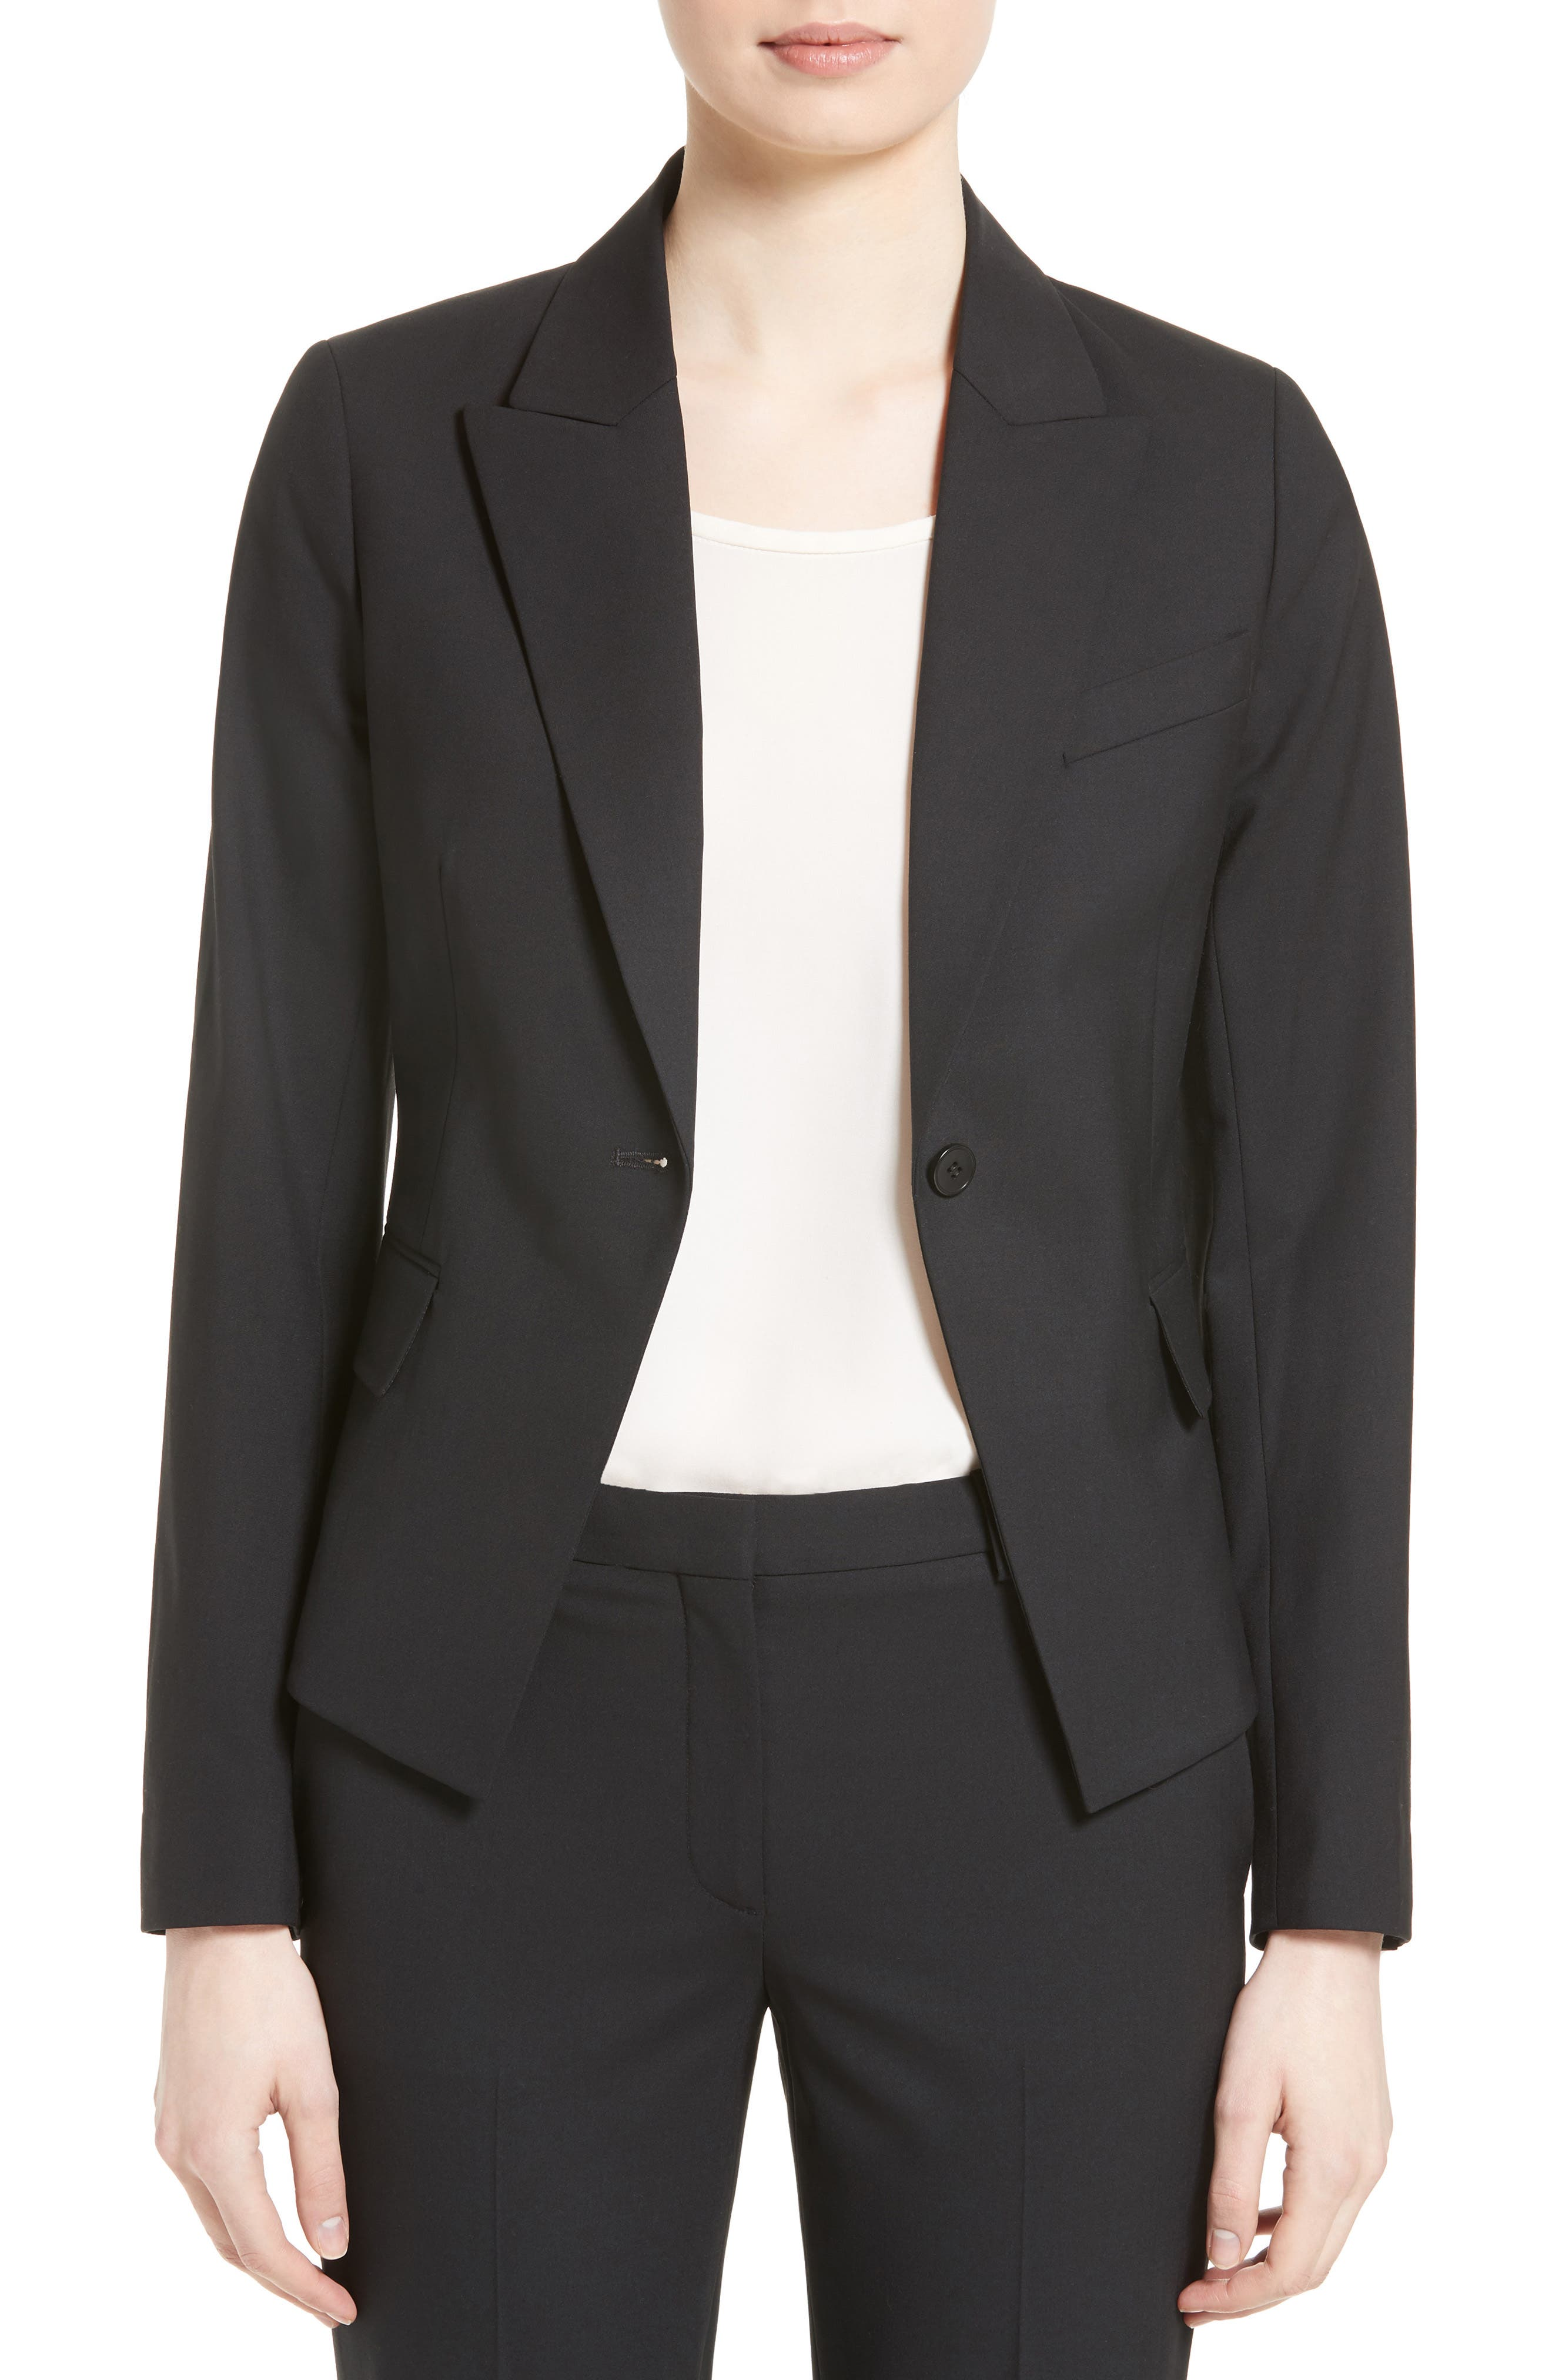 Alternate Image 1 Selected - Theory Brince B Good Wool Suit Jacket (Nordstrom Exclusive)